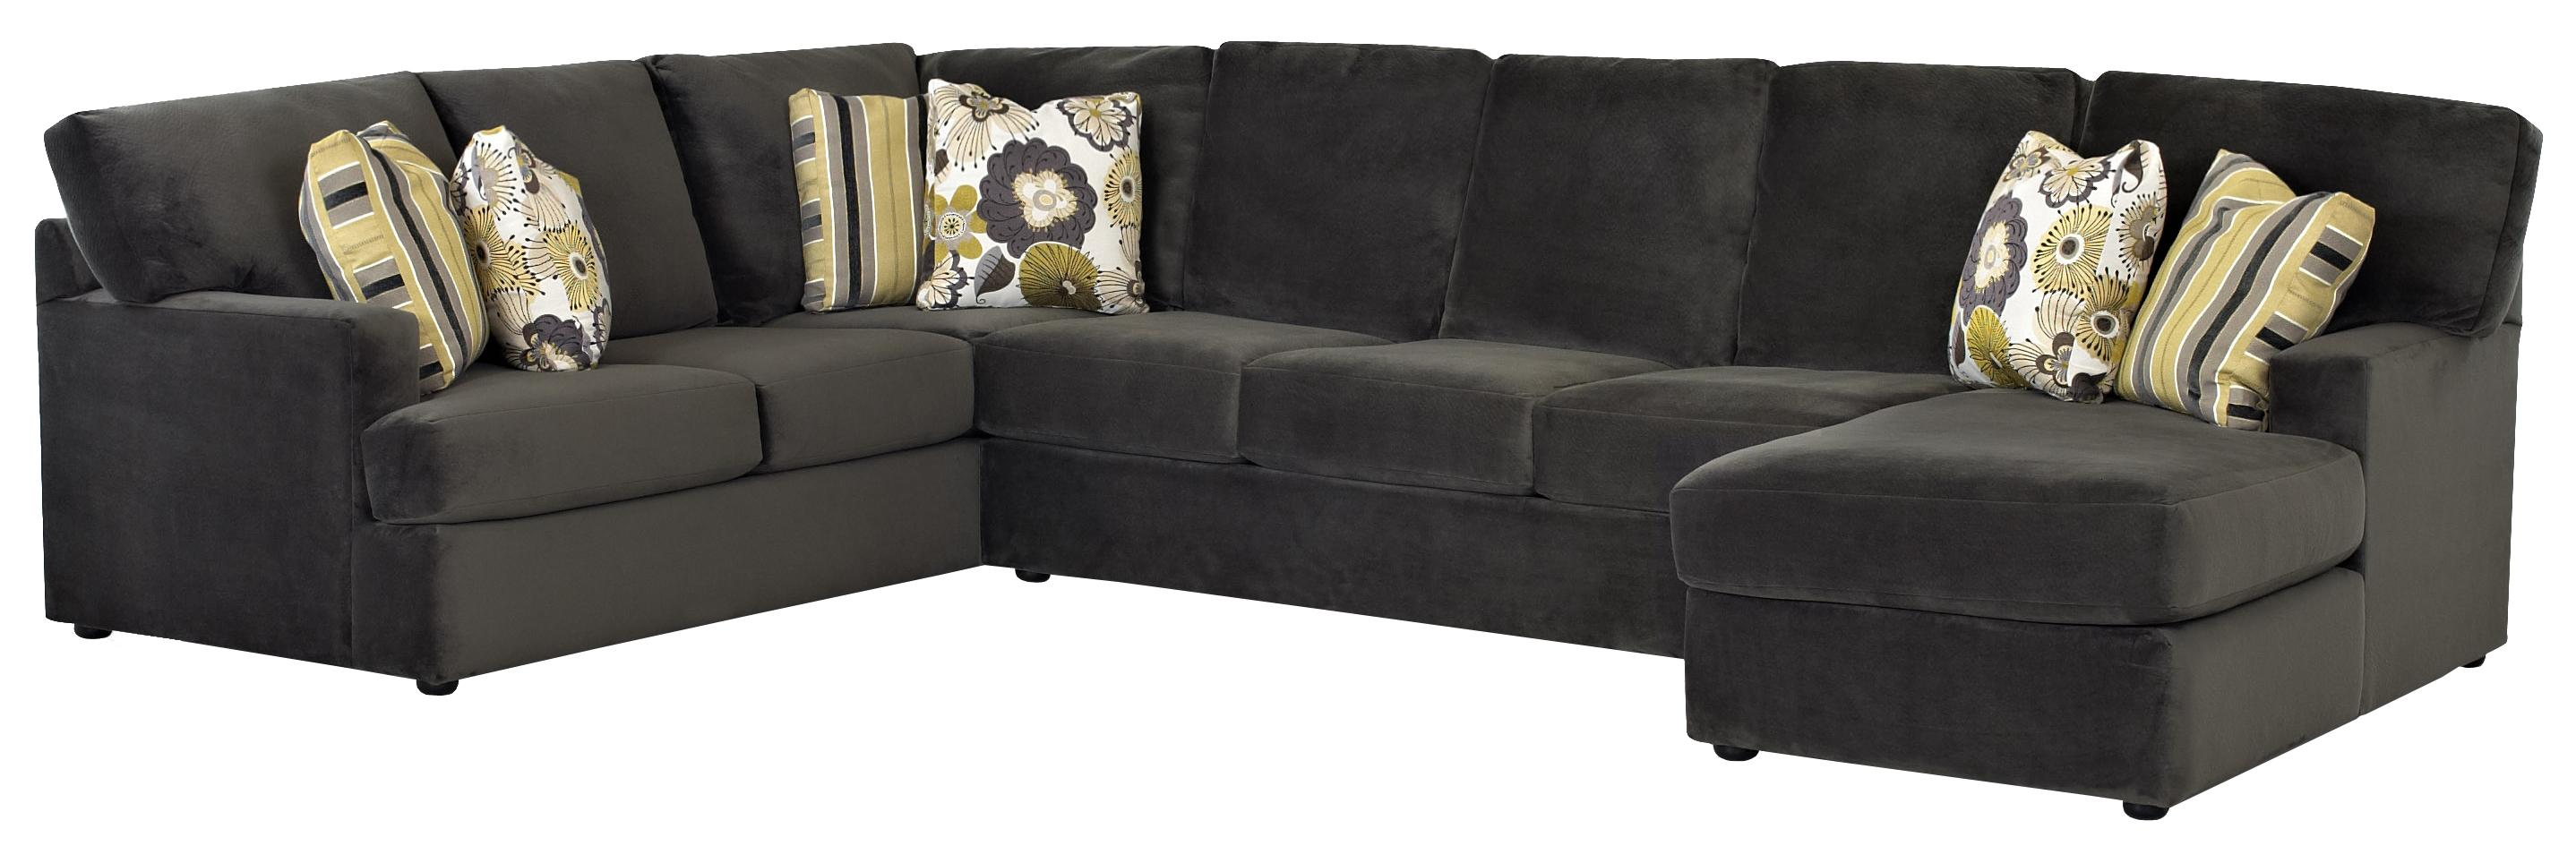 Sectional sofa with right side chaise by klaussner wolf for Alexander sectional sofa chaise